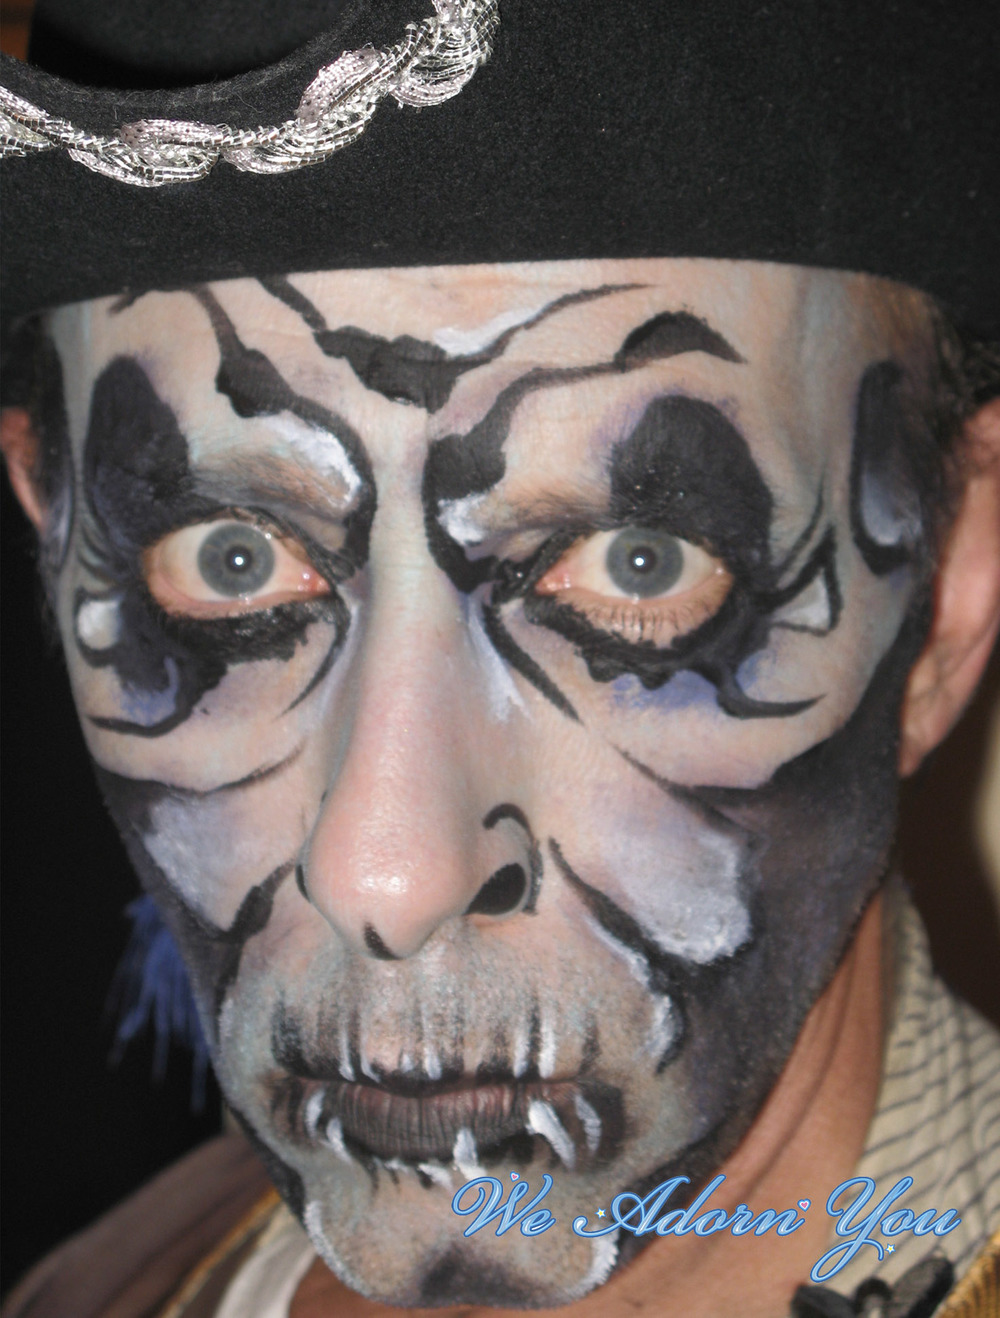 Face Painting Guy Pirate- We Adorn You.jpg